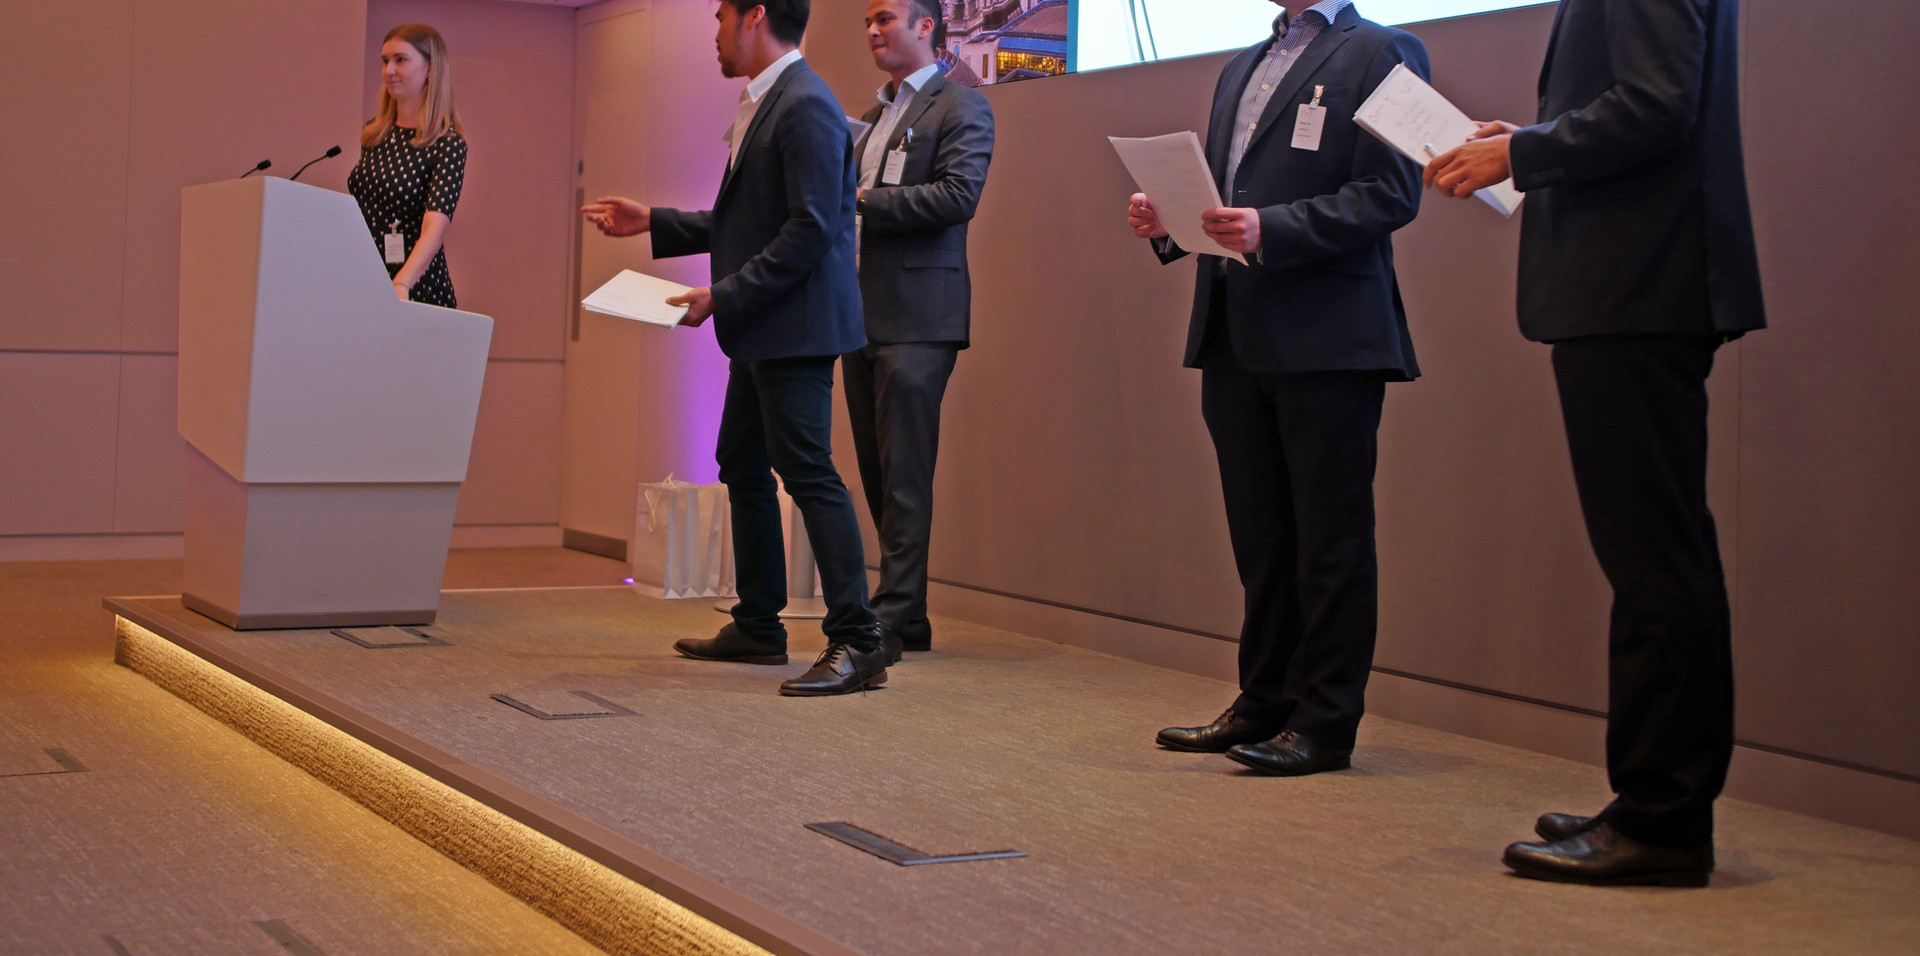 Judges Announcing the Winners